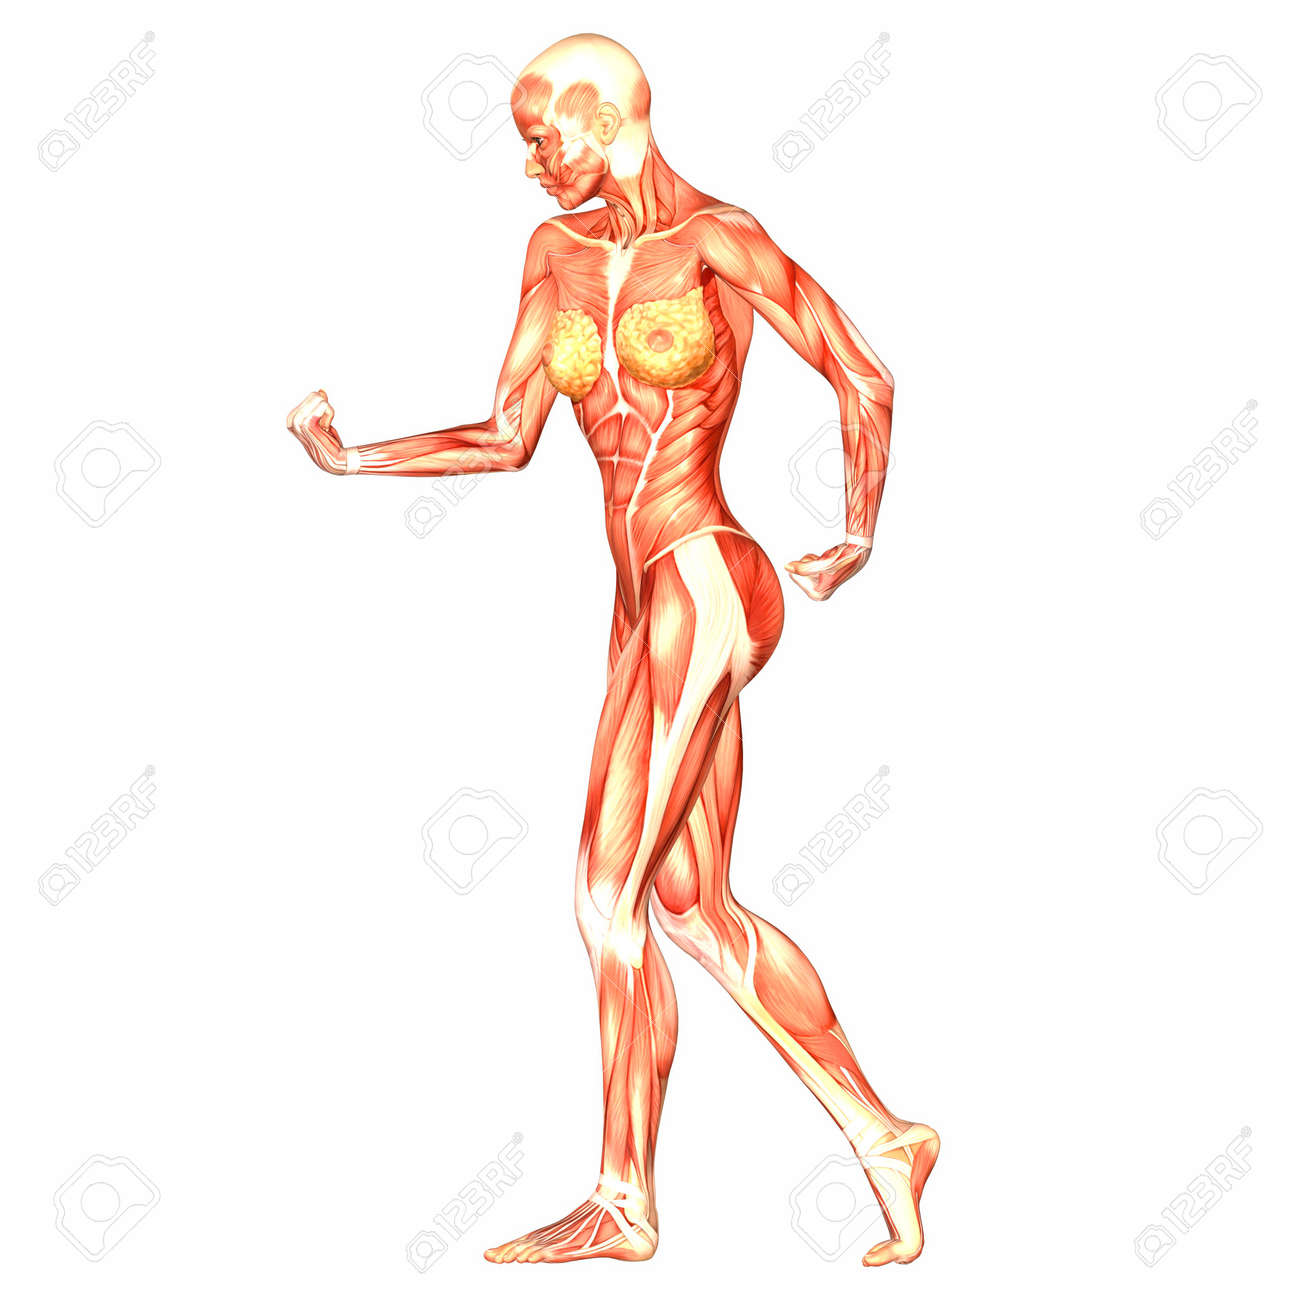 Illustration Of The Anatomy Of The Female Human Body Isolated ...